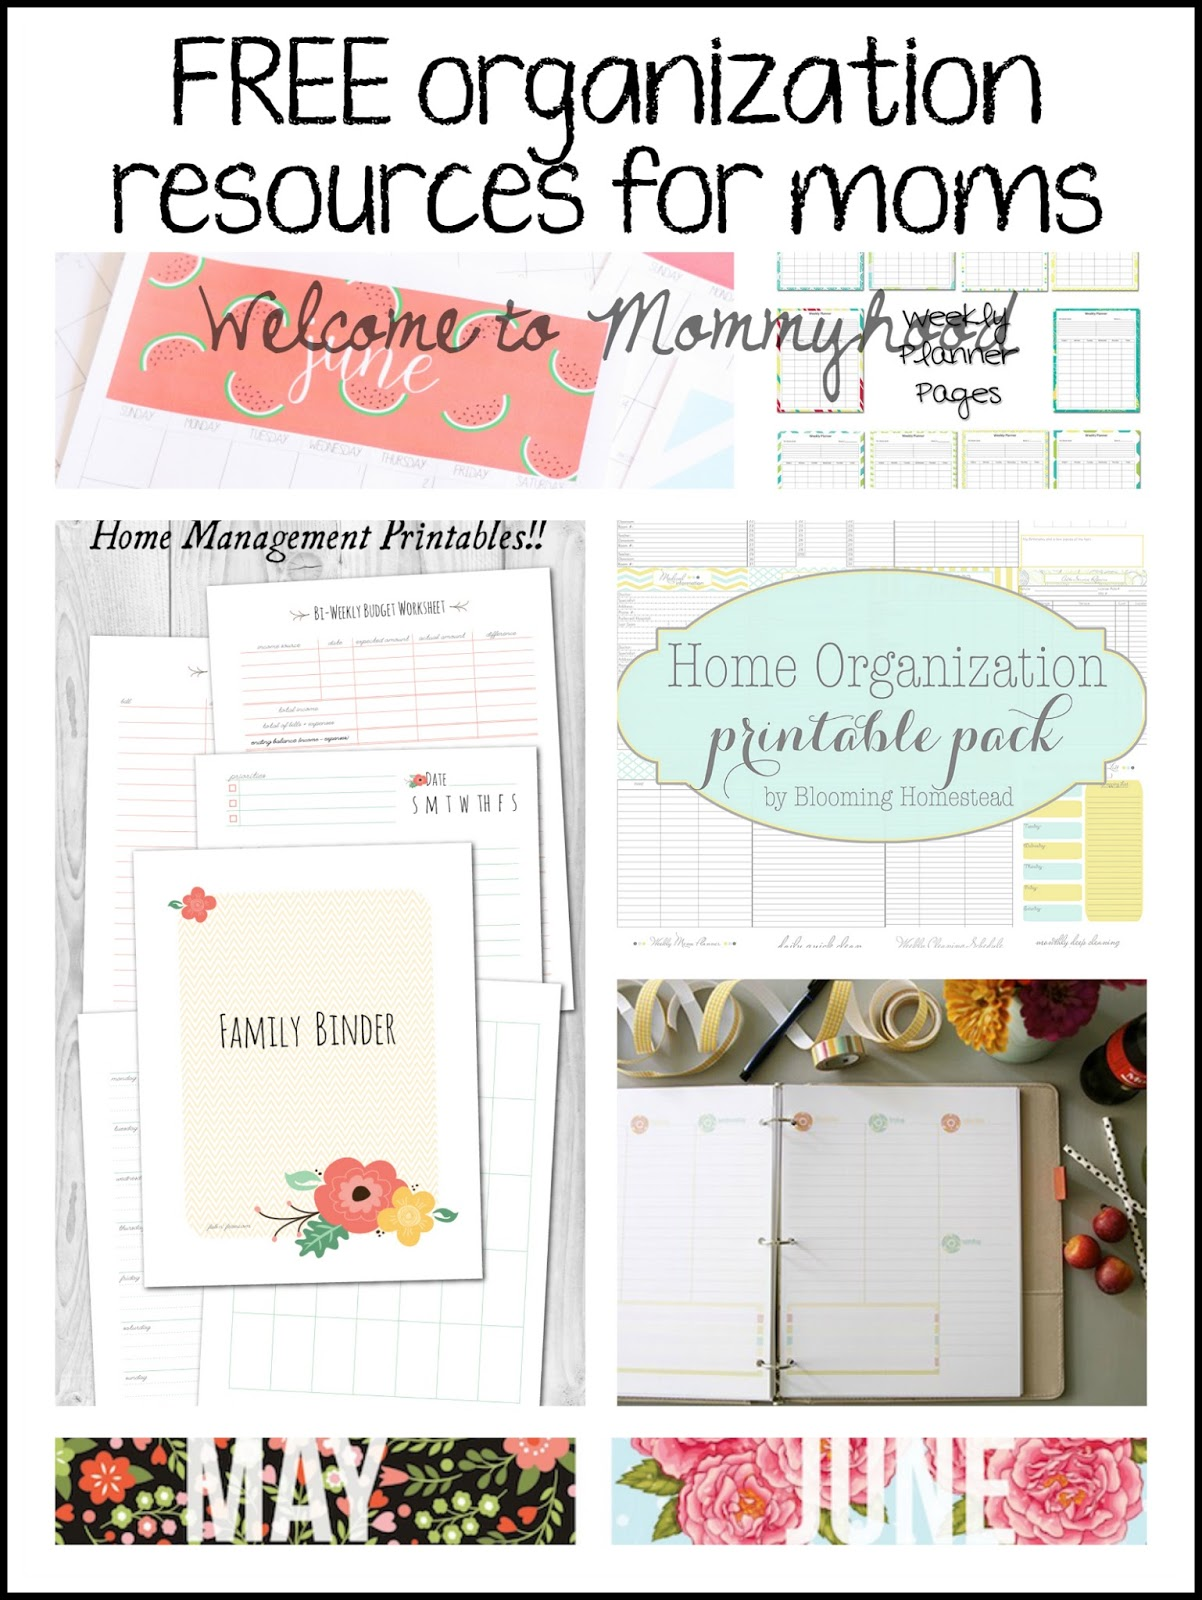 photograph relating to Free Printable Home Organization Worksheets titled Dwelling Company Printables Cost-free Printable Household Business